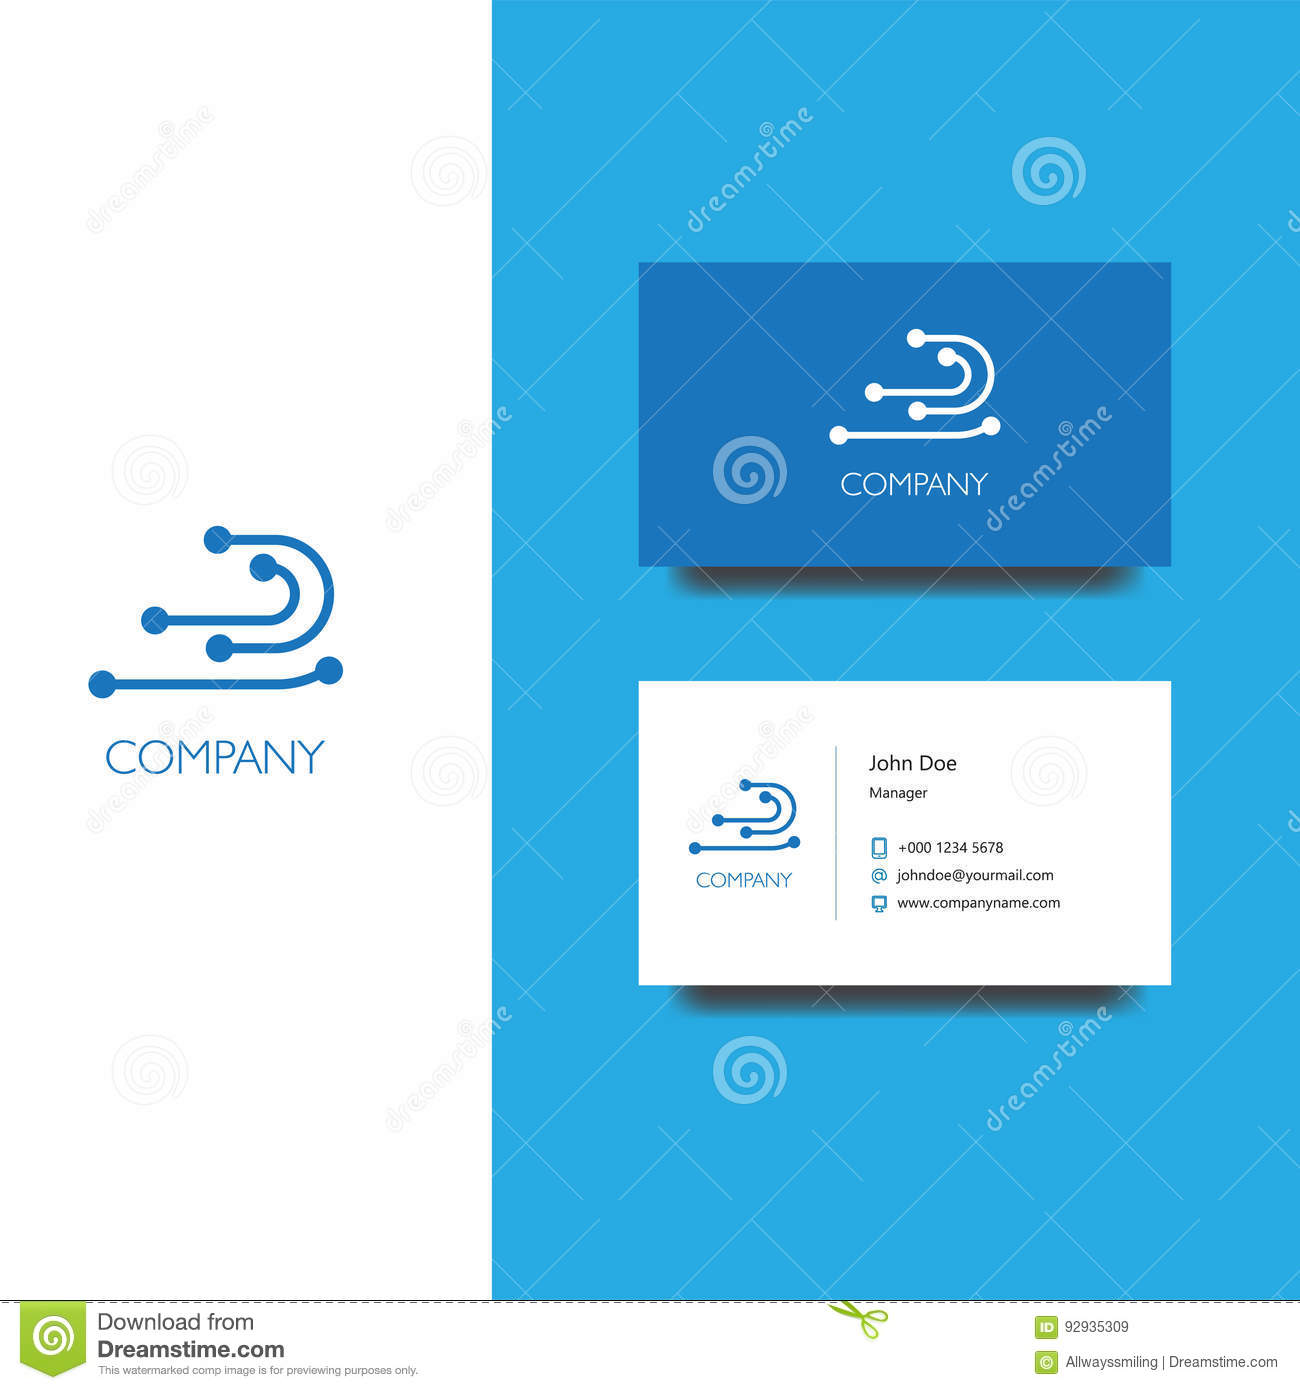 Electronics services or goods company logo and business card vector eps logo for electornic services or store company business card template icon design colourmoves